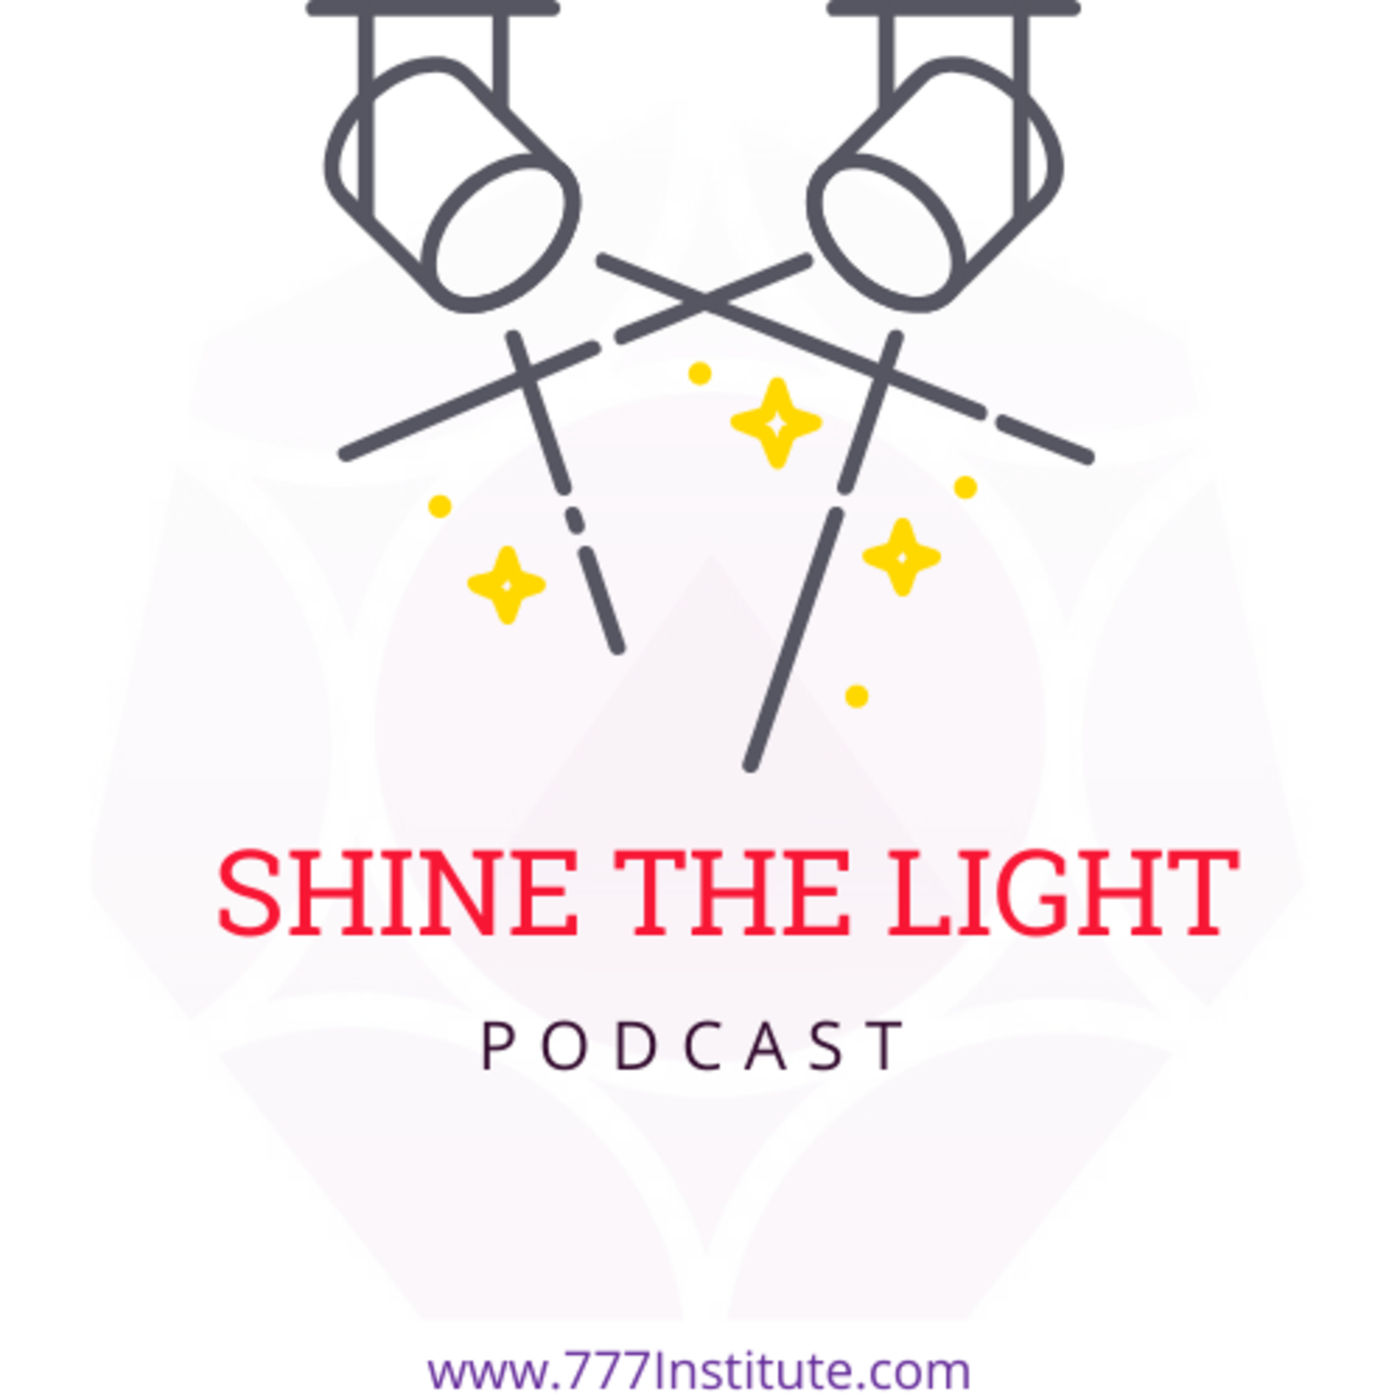 Shine The Light